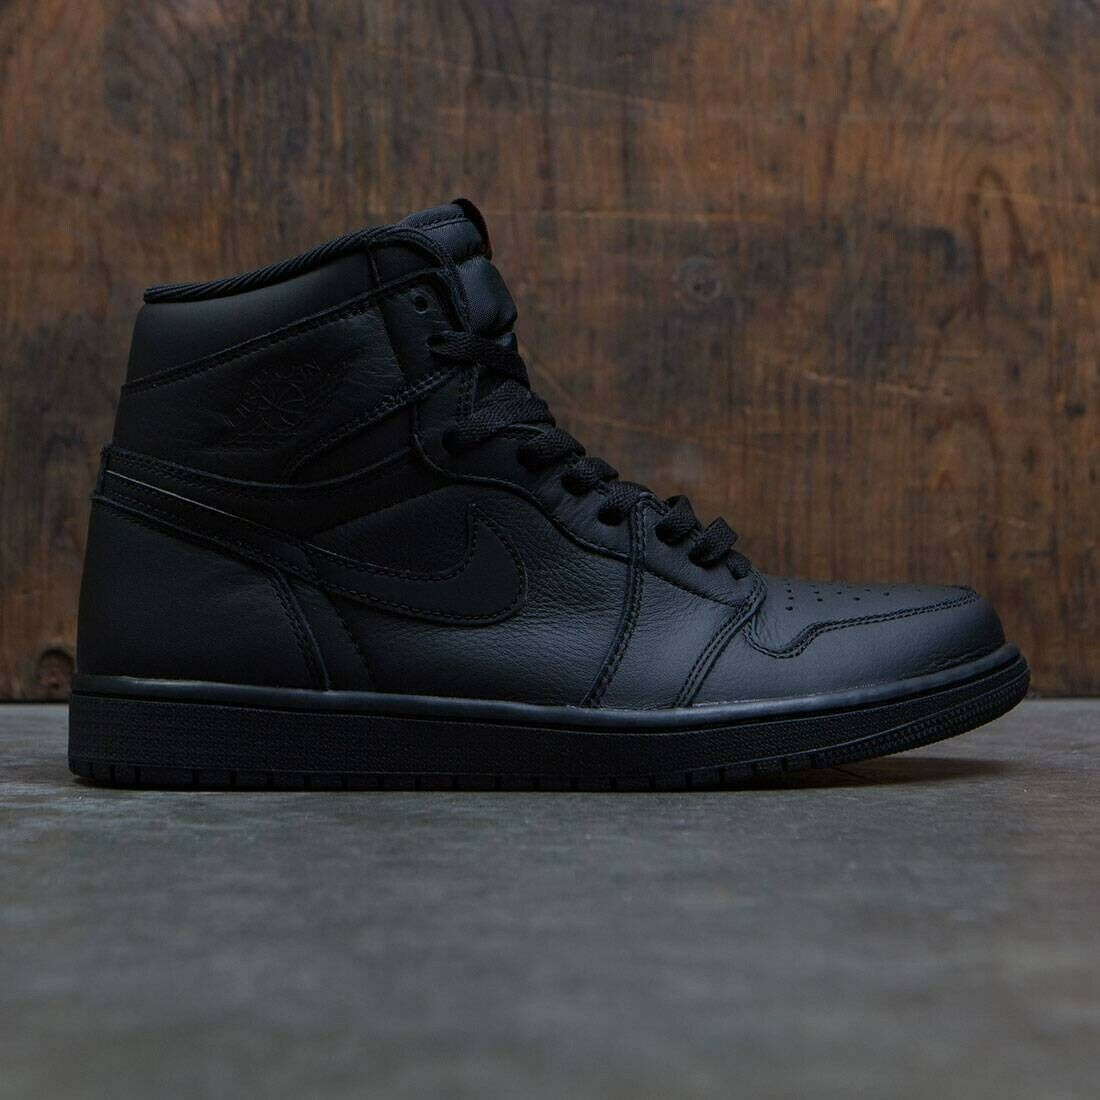 2017 Nike Air Jordan 1 Retro High OG Triple Black Red Size 9.5. 555088-022